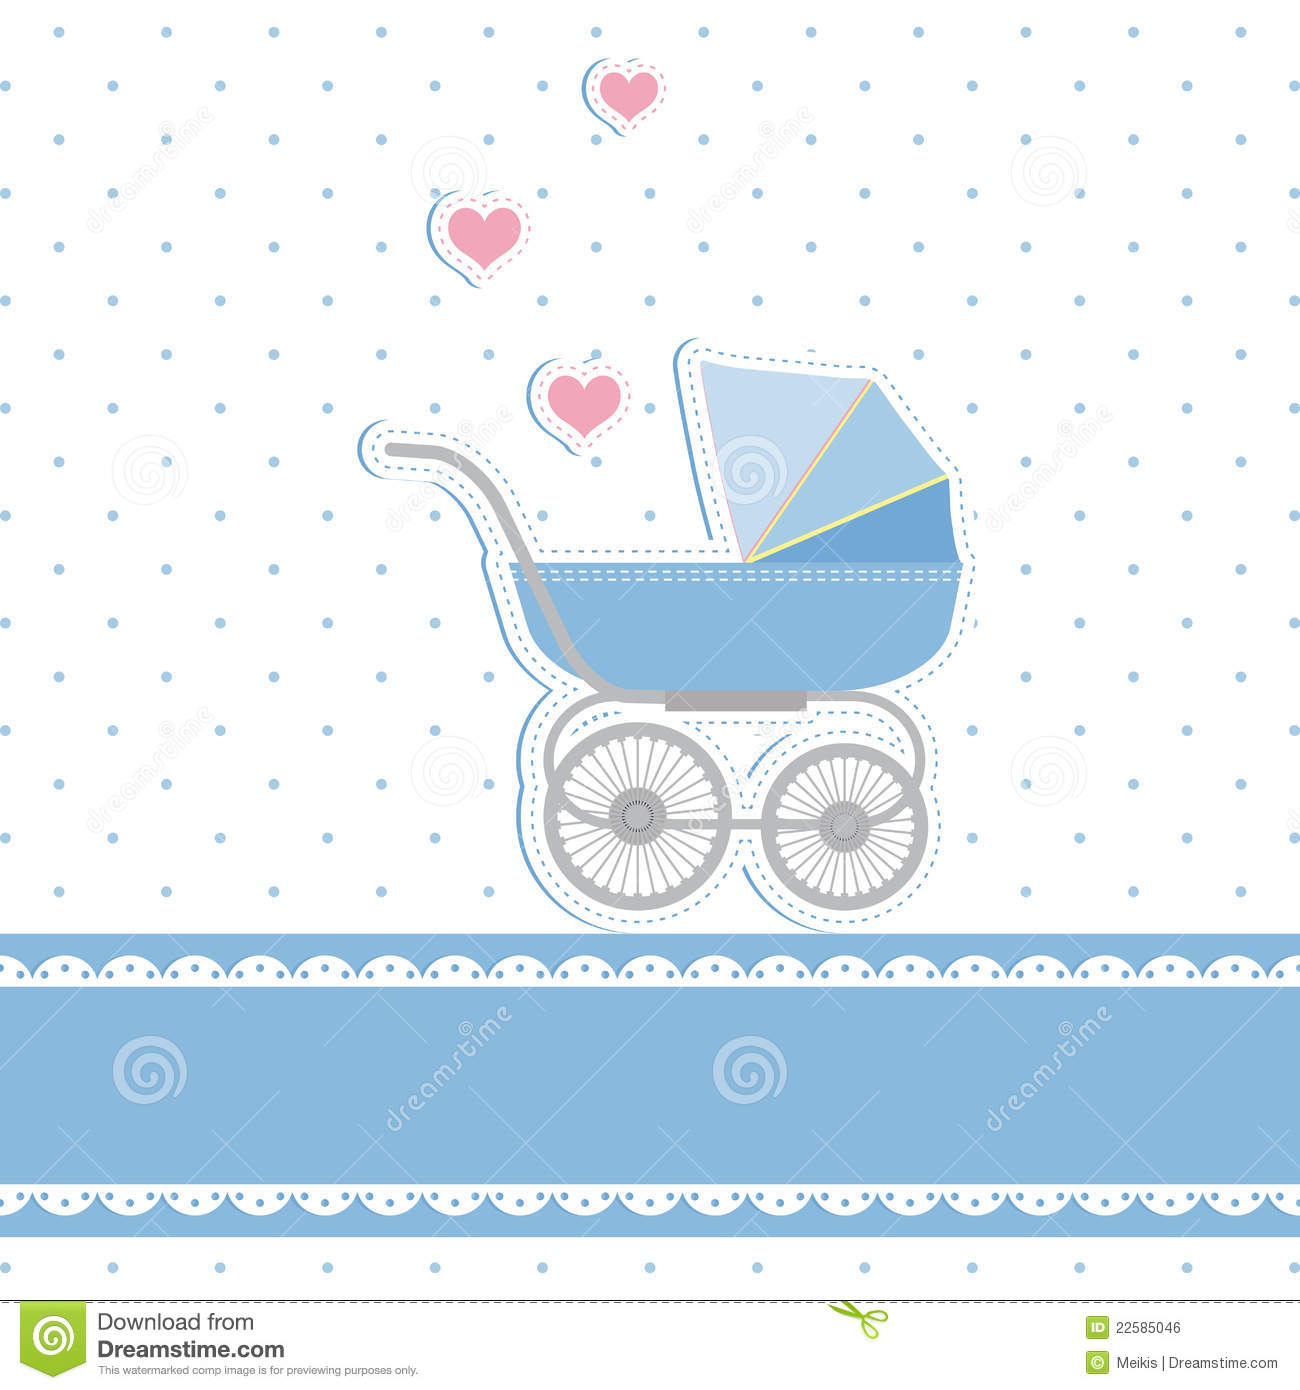 New Baby Boy Shower Invitation Card Stock Vector Illustration of